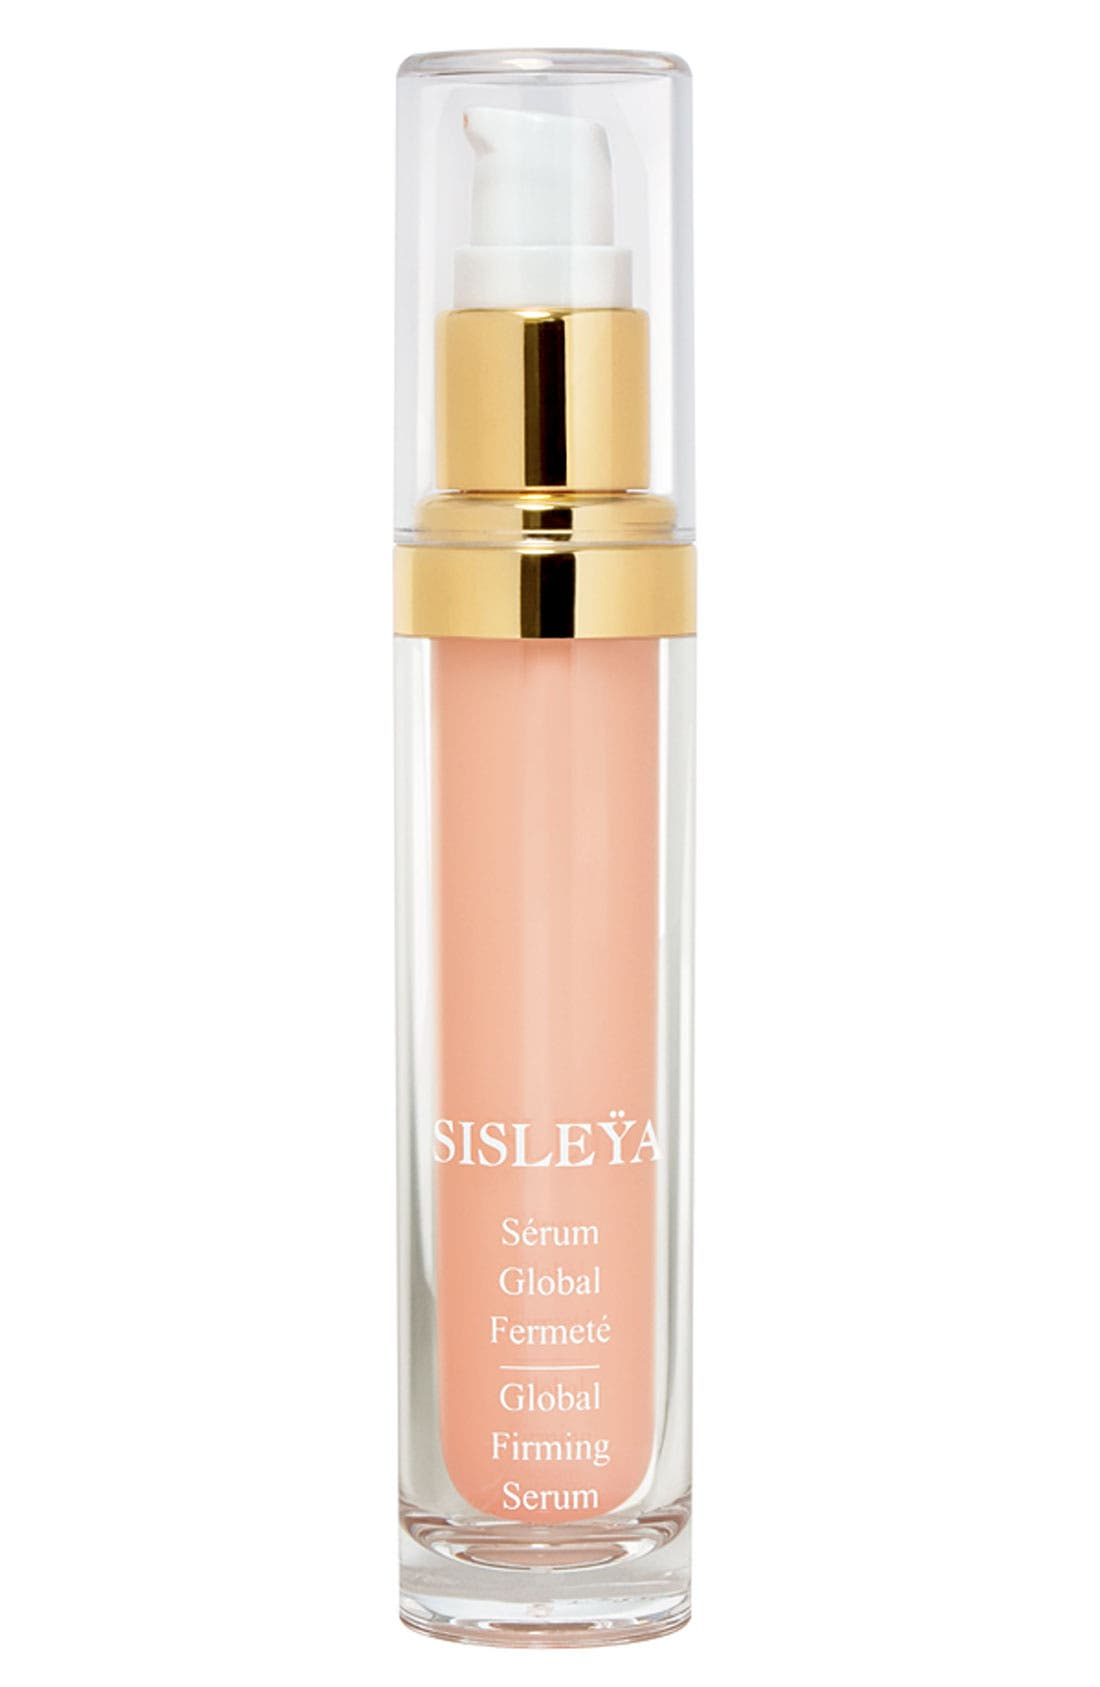 Sisley 'Sisleÿa' Global Firming Serum